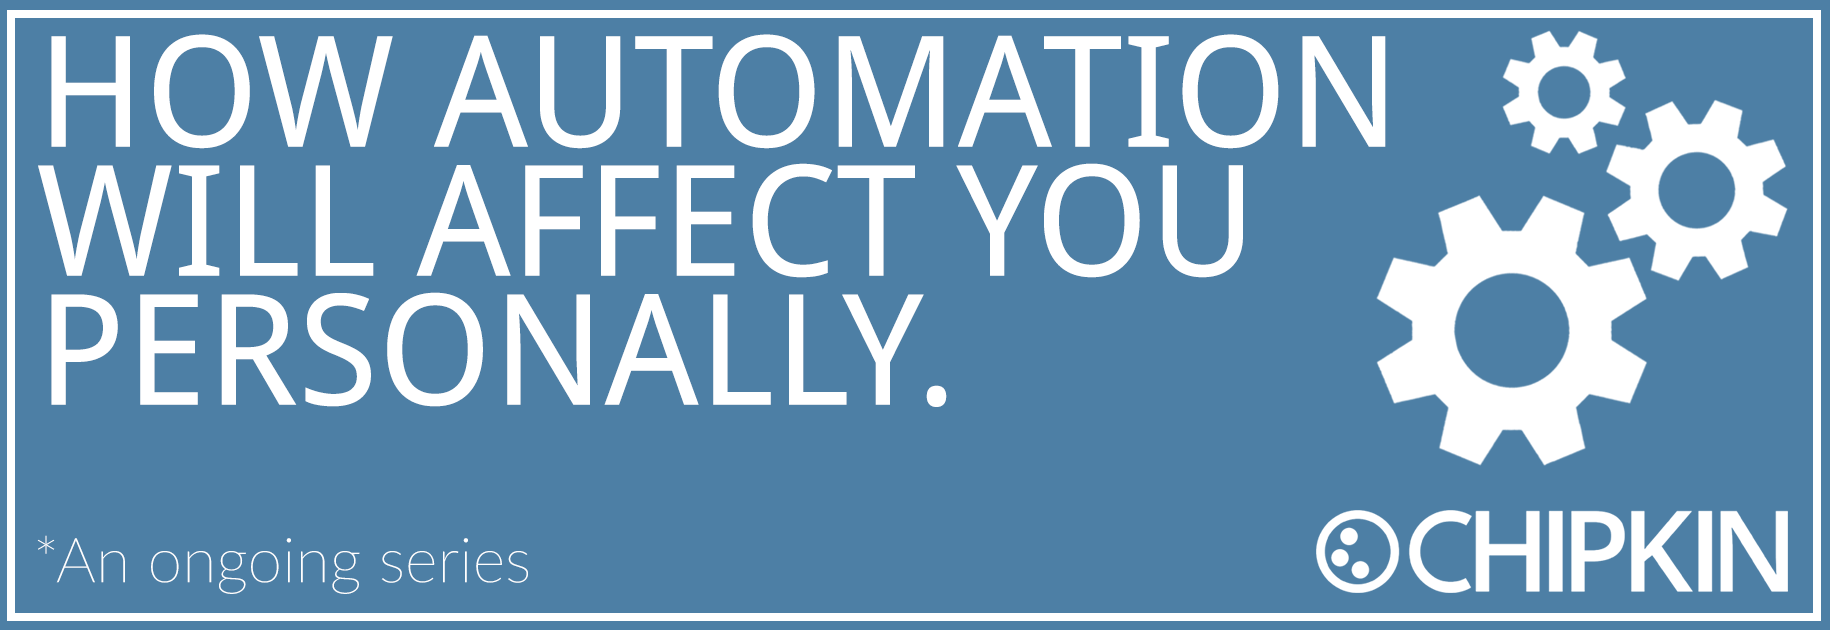 How Automation Will Affect You Personally